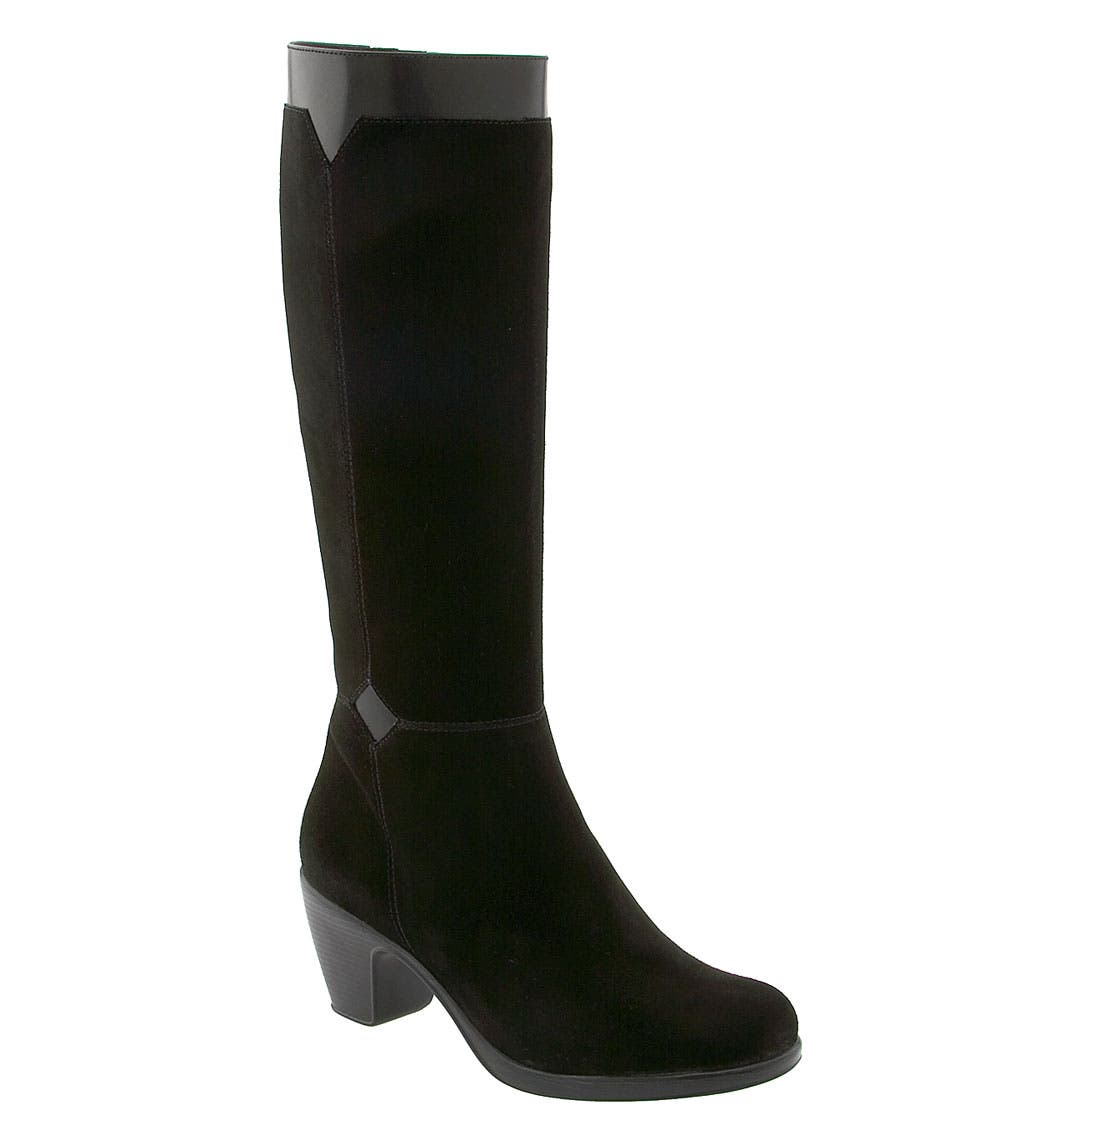 Main Image - Dansko 'Bella' Tall Boot